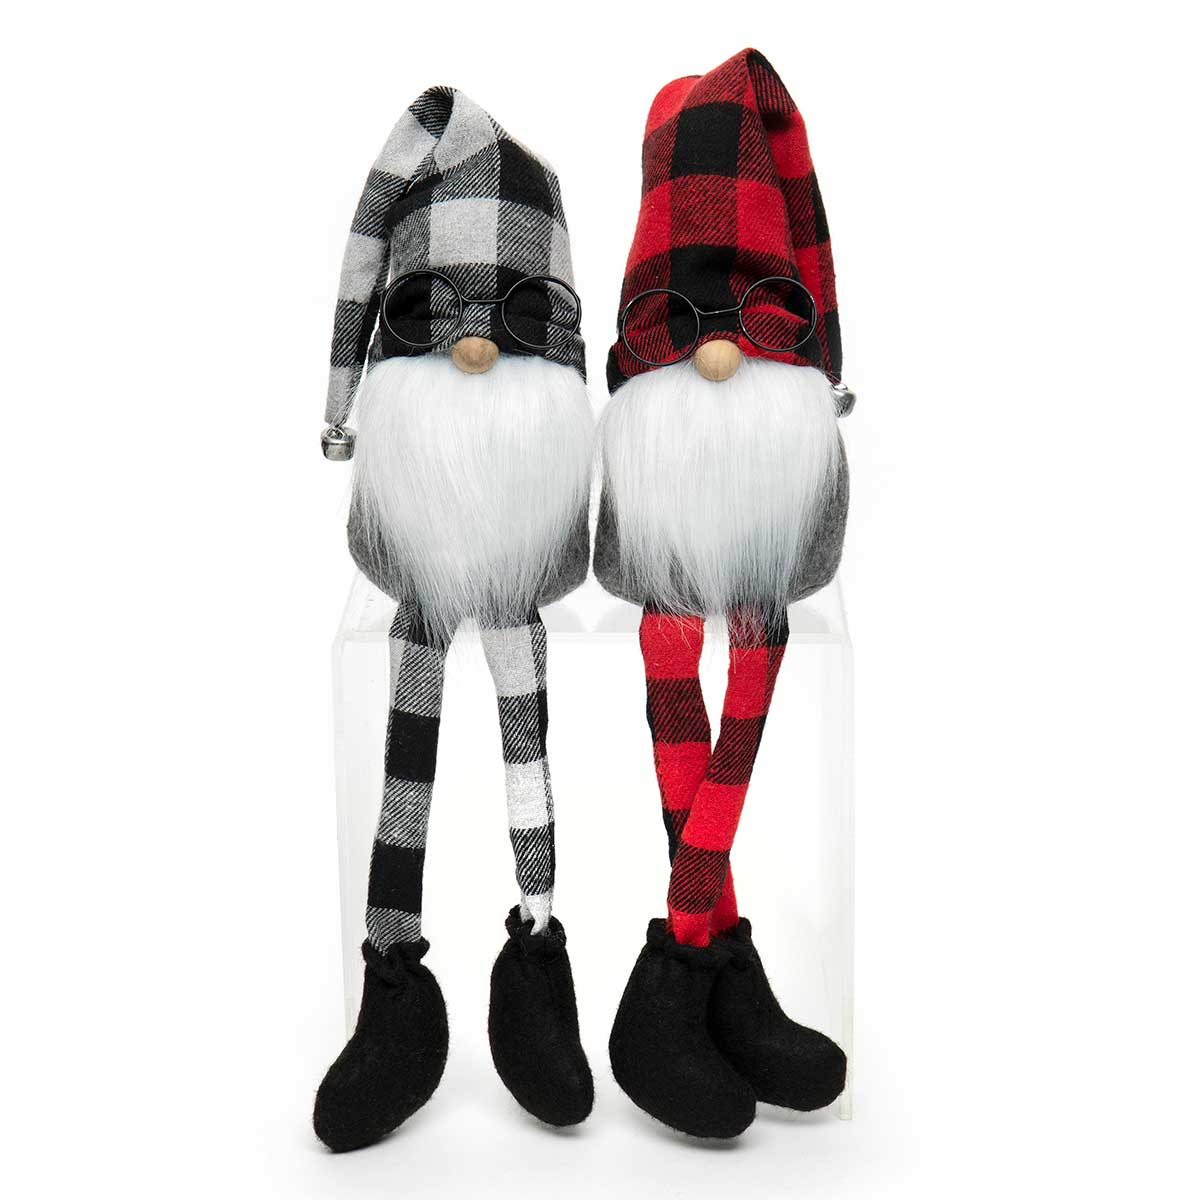 GNOME WITH GLASSES, BUFFALO PLAID